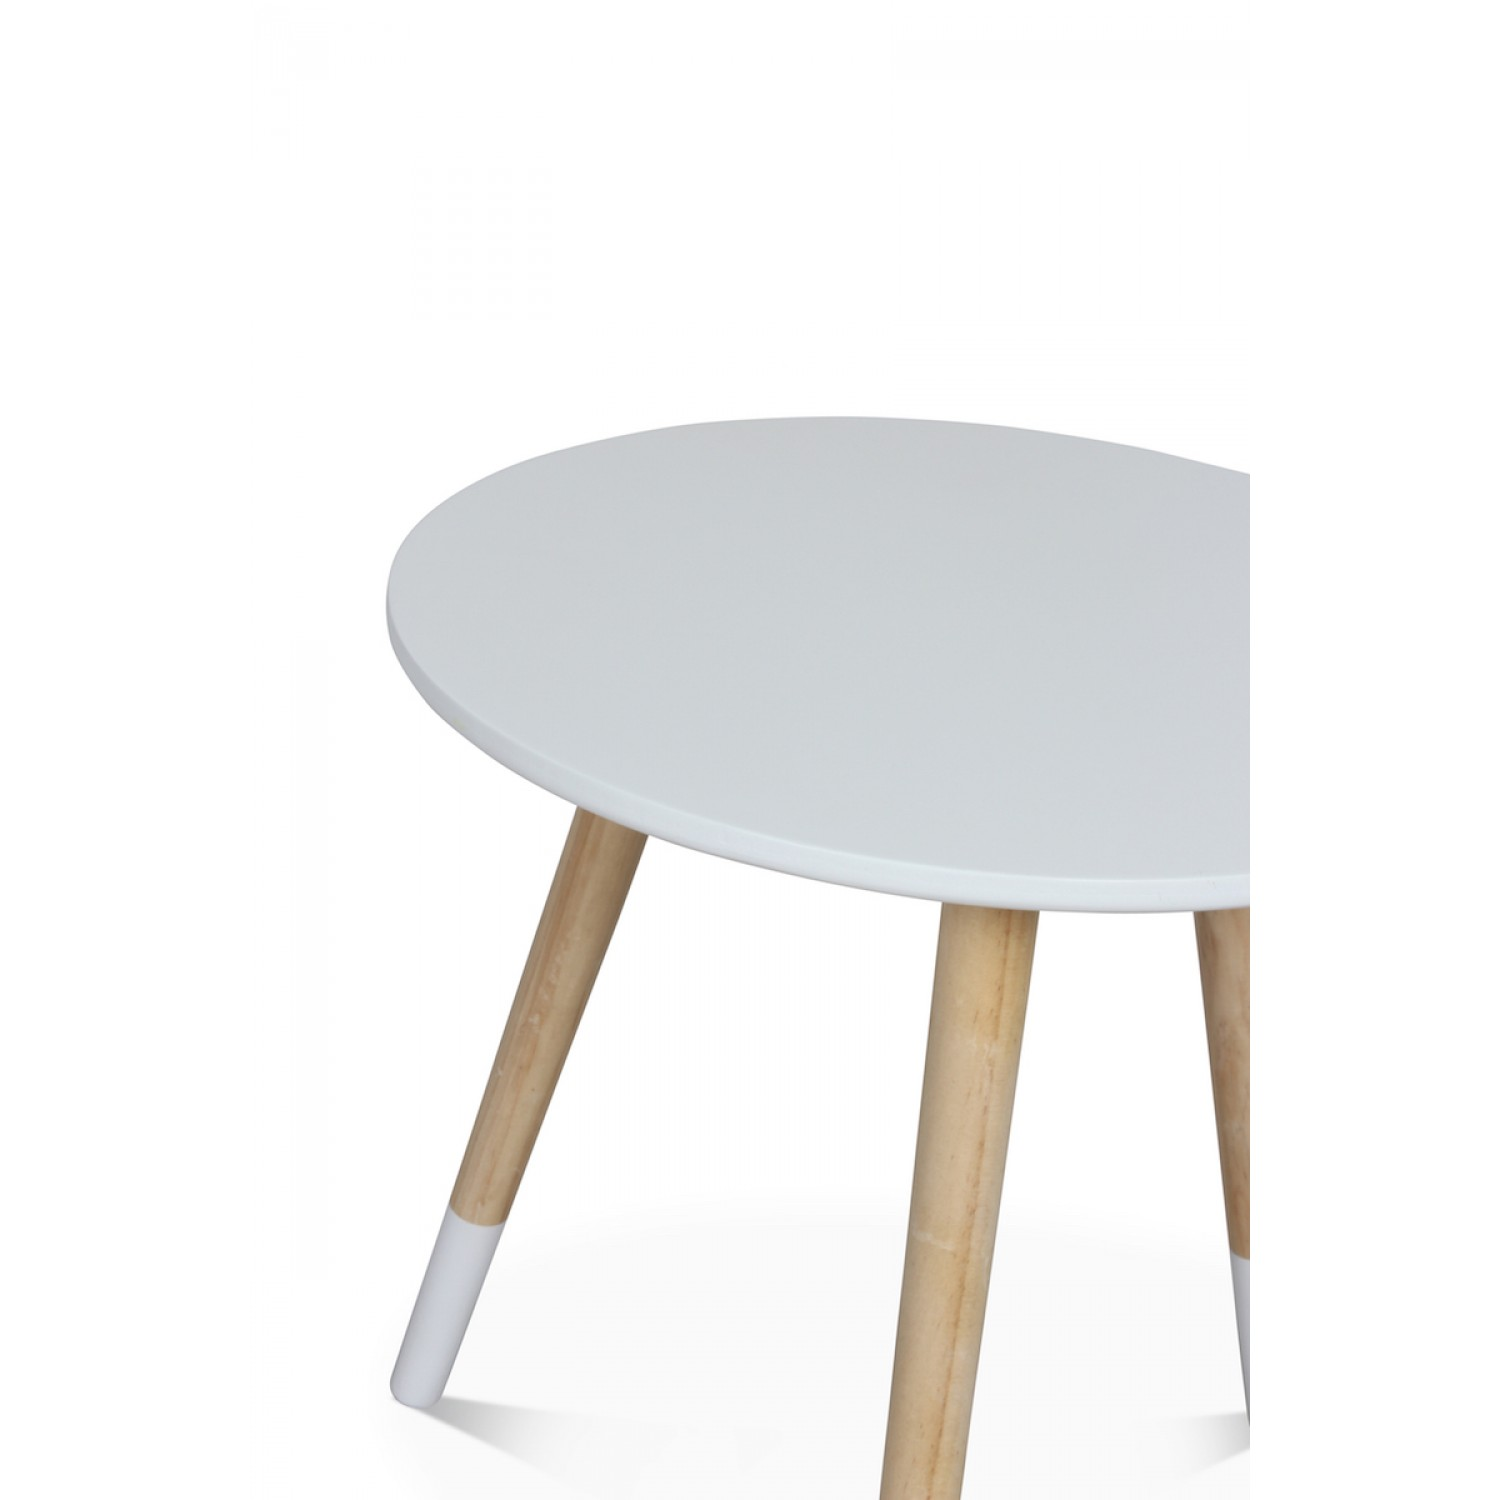 table basse scandinave blanche gj kt diam tre 40 cm demeure et jardin. Black Bedroom Furniture Sets. Home Design Ideas